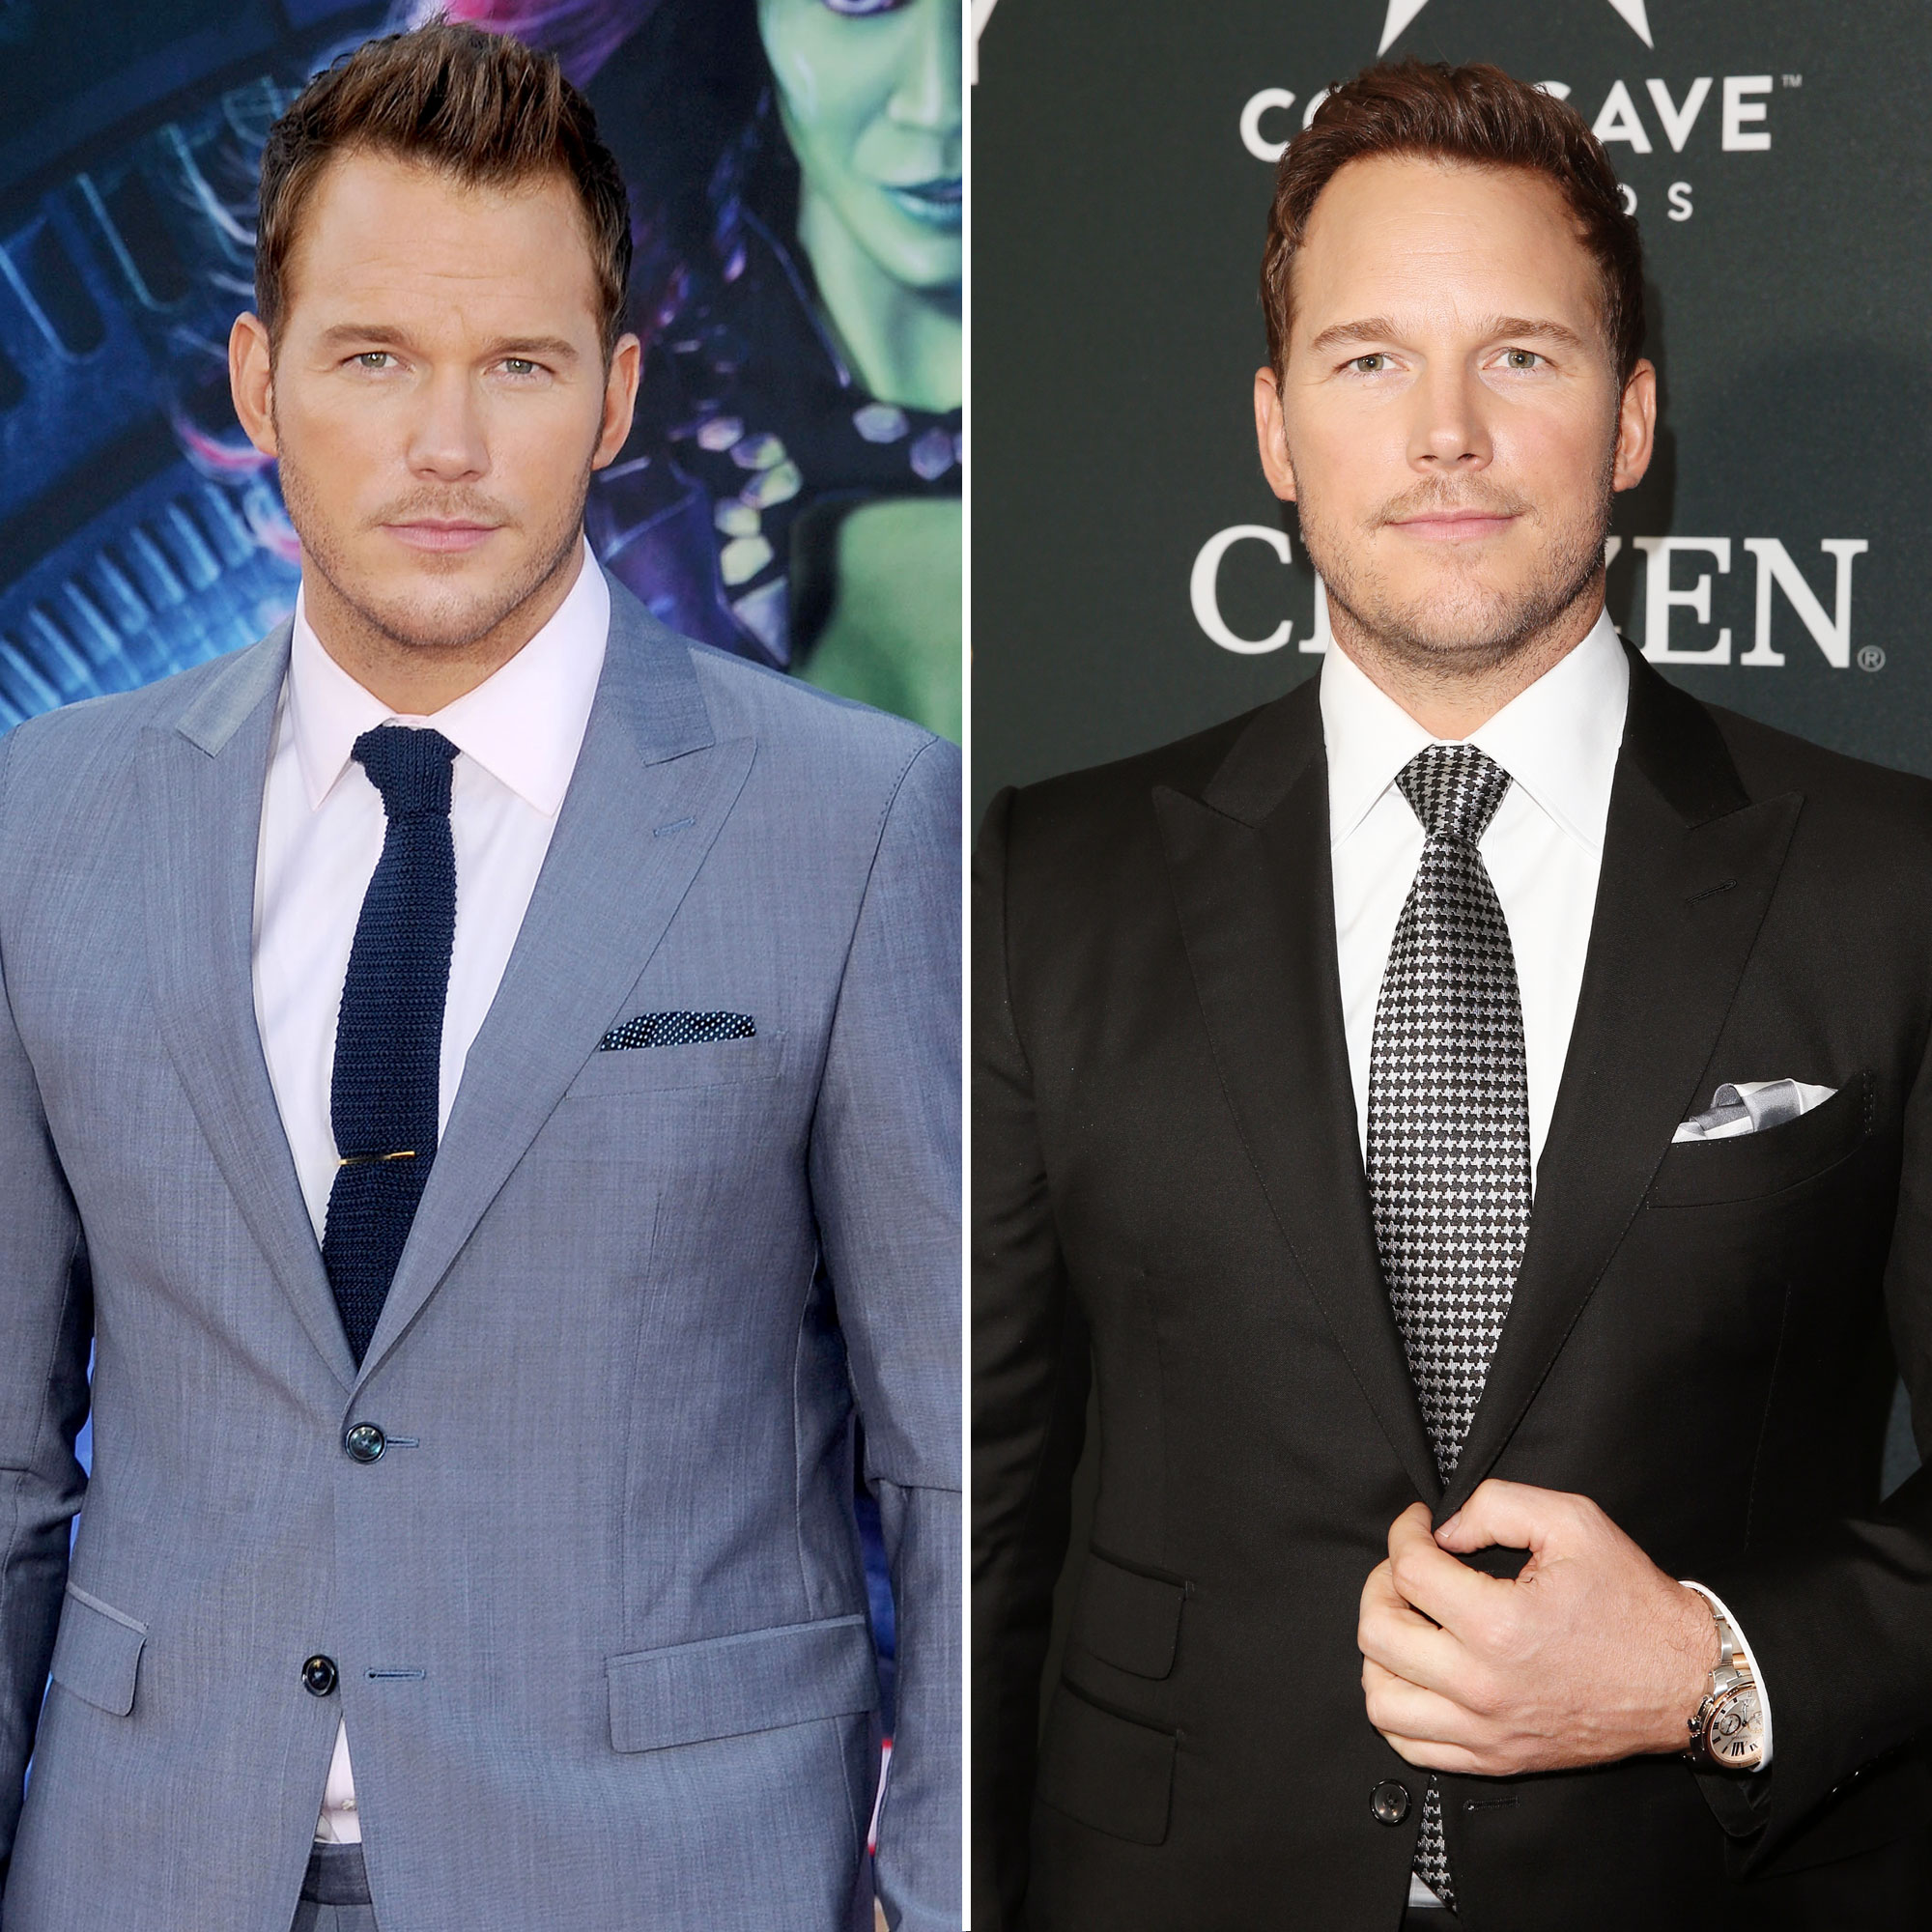 Chris Pratt Avengers Premiere First Super Red Carpet to Their Last - The Parks and Recreation alum first walked the carpet in 2014 as Peter Quill/Star Lord at the premiere of Guardians of the Galaxy while married to Anna Faris . The pair, who attended the event together, have since split , with Pratt getting engaged to Katherine Schwarzenegger : his date for the Endgame premiere.